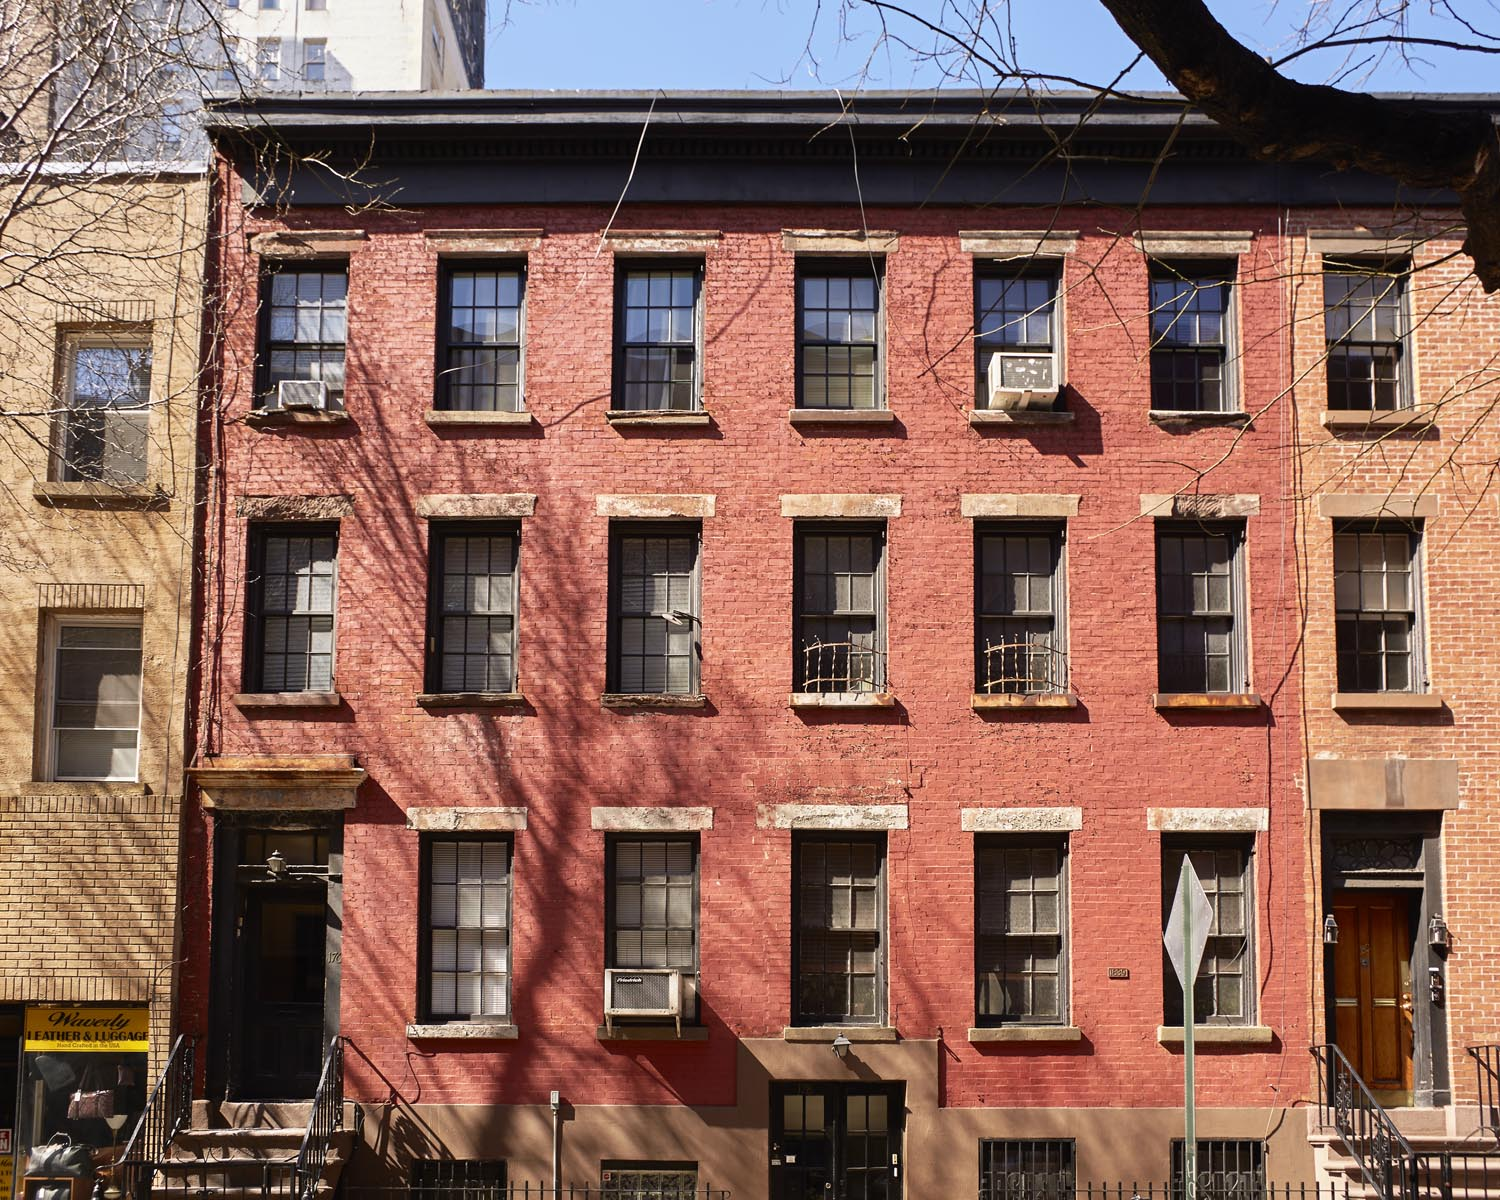 Exterior of Mary Helen Rowell's 90-square-foot apartment in the West Village, Manhattan